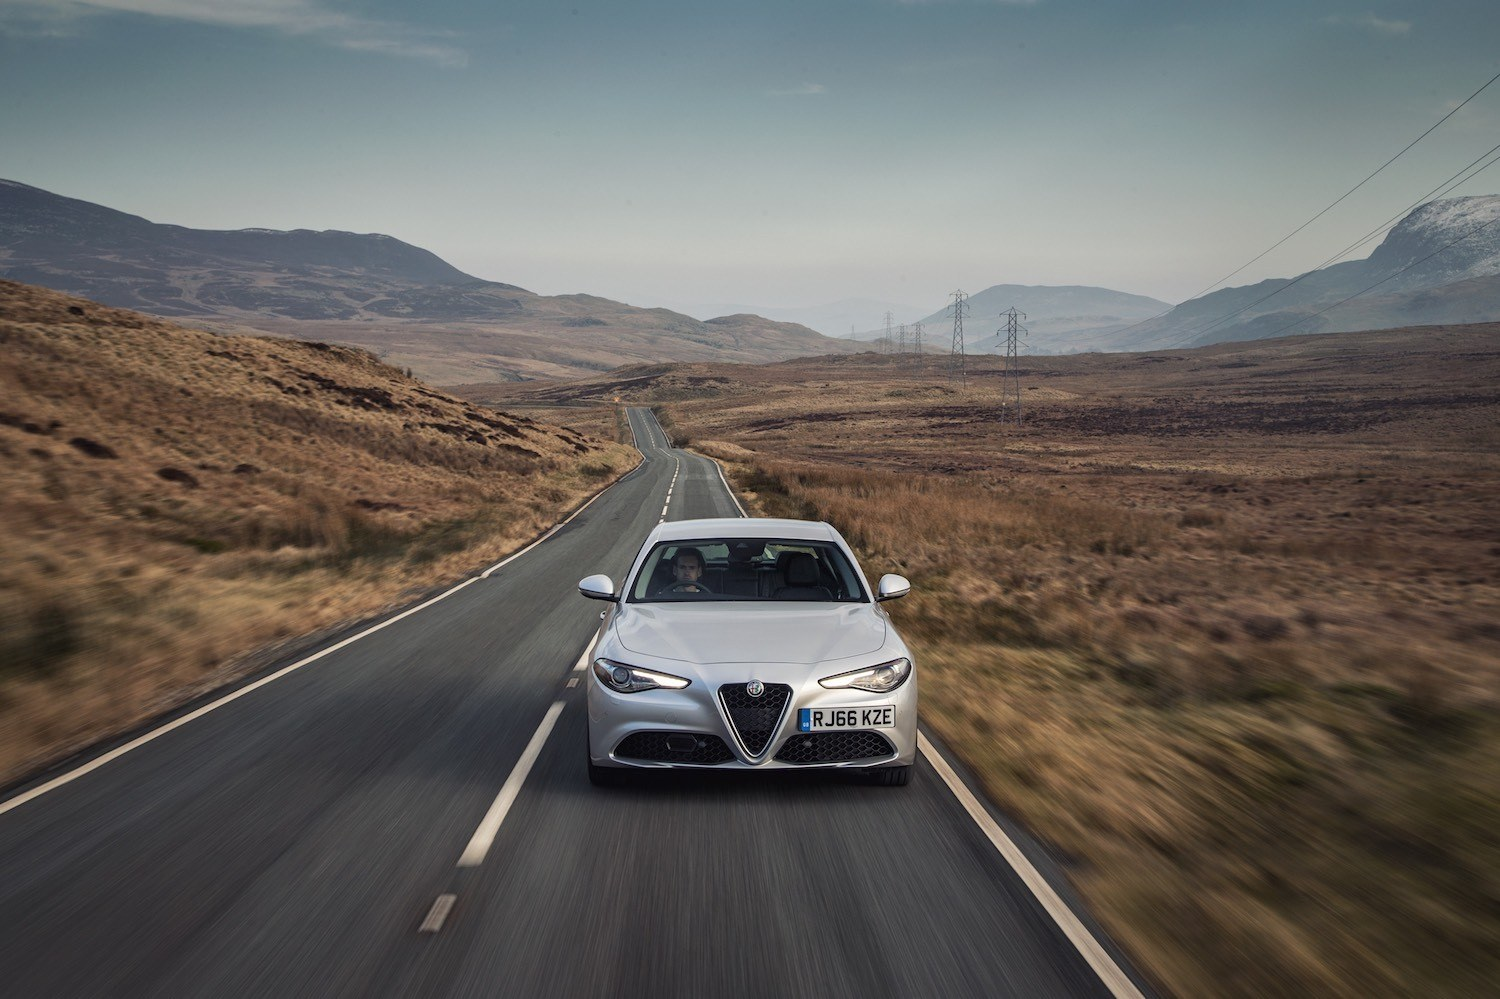 Tom Scanlan reviews the Alfa Romeo Giulia for Drive 14